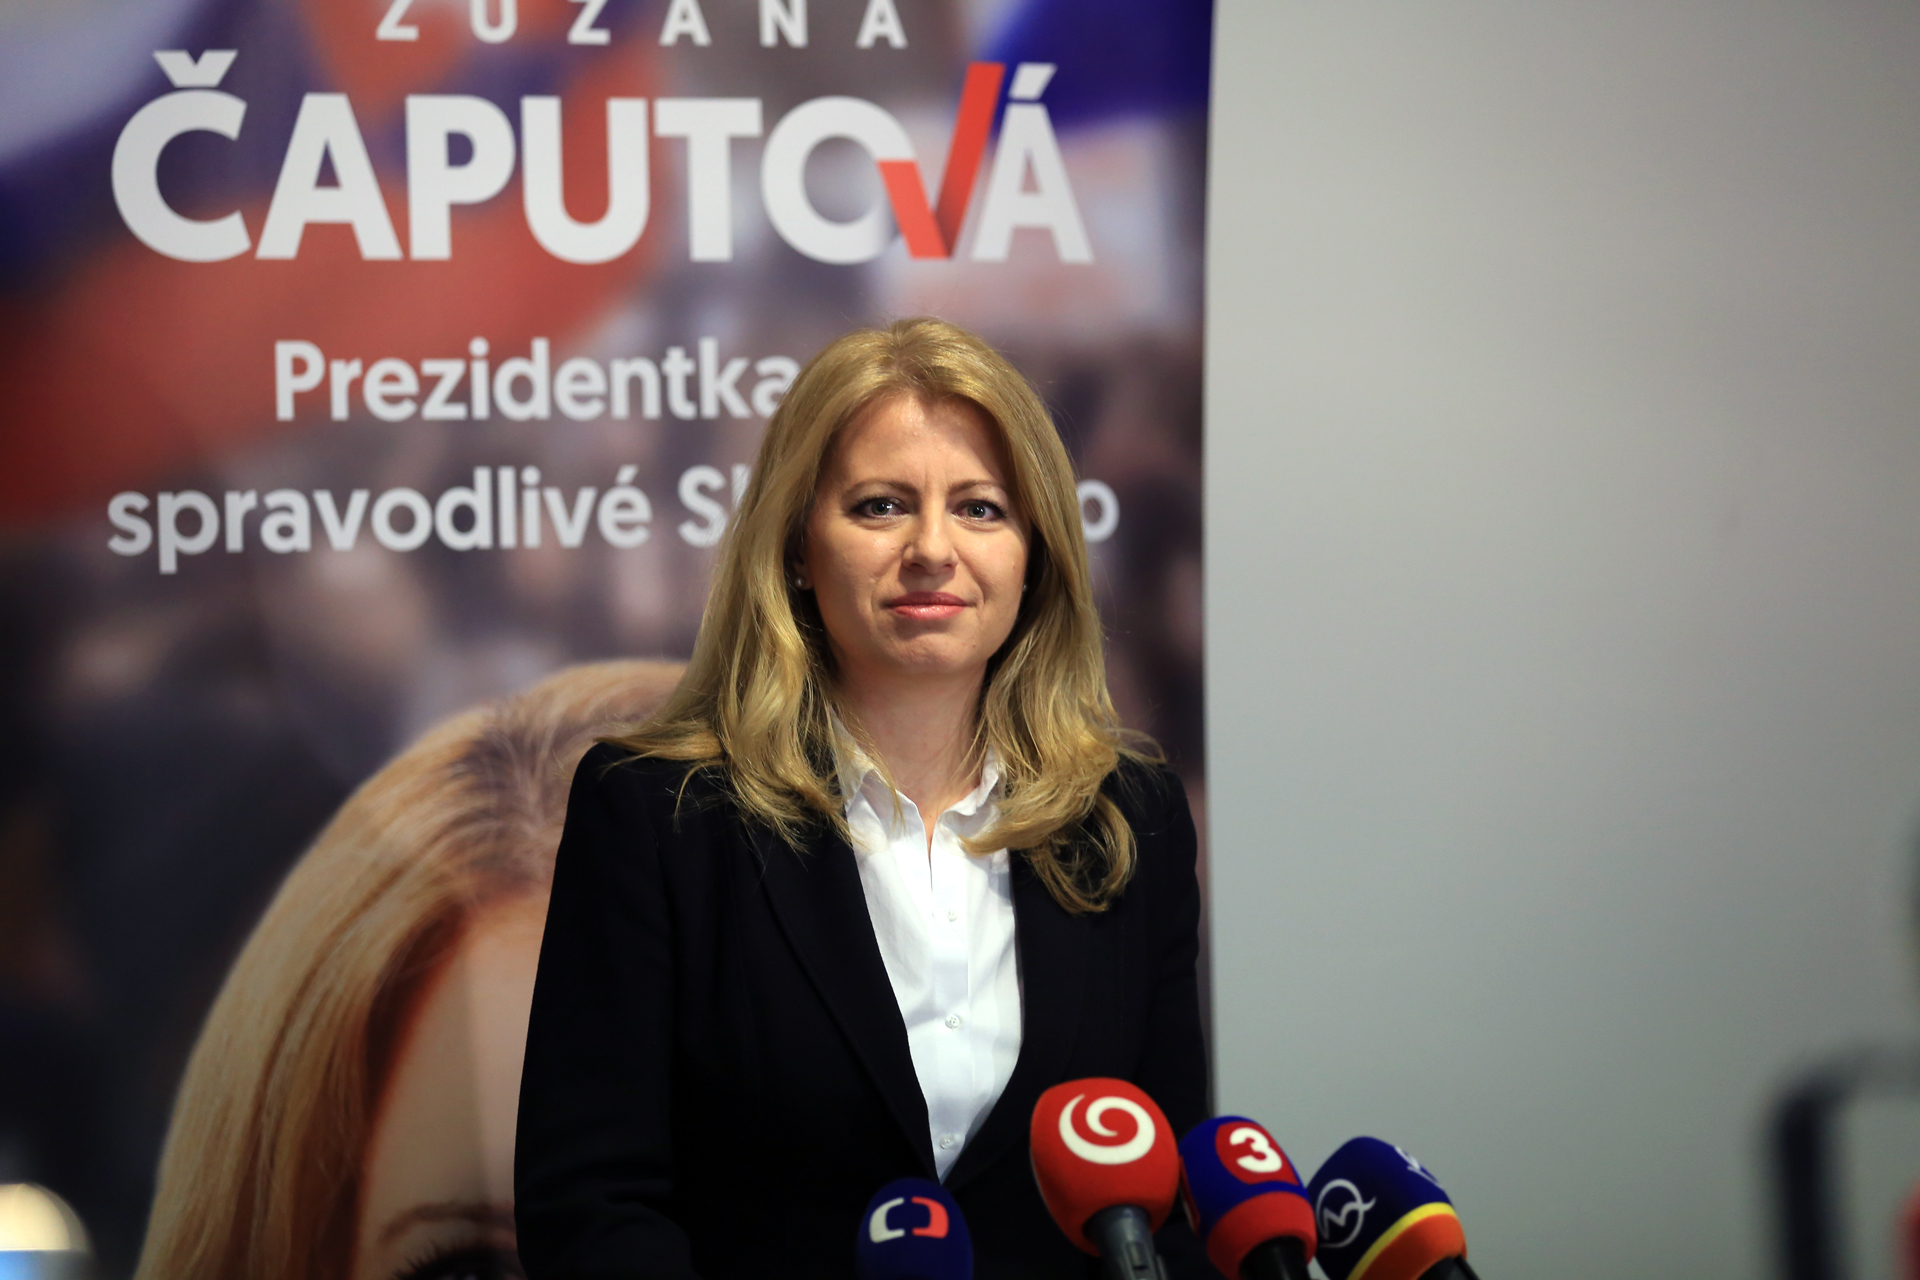 Earlier this year, pro-European liberal Zuzana Caputová was elected president of Slovakia, a country which is leading the democratic fightback against authoritarianism in Central Europe